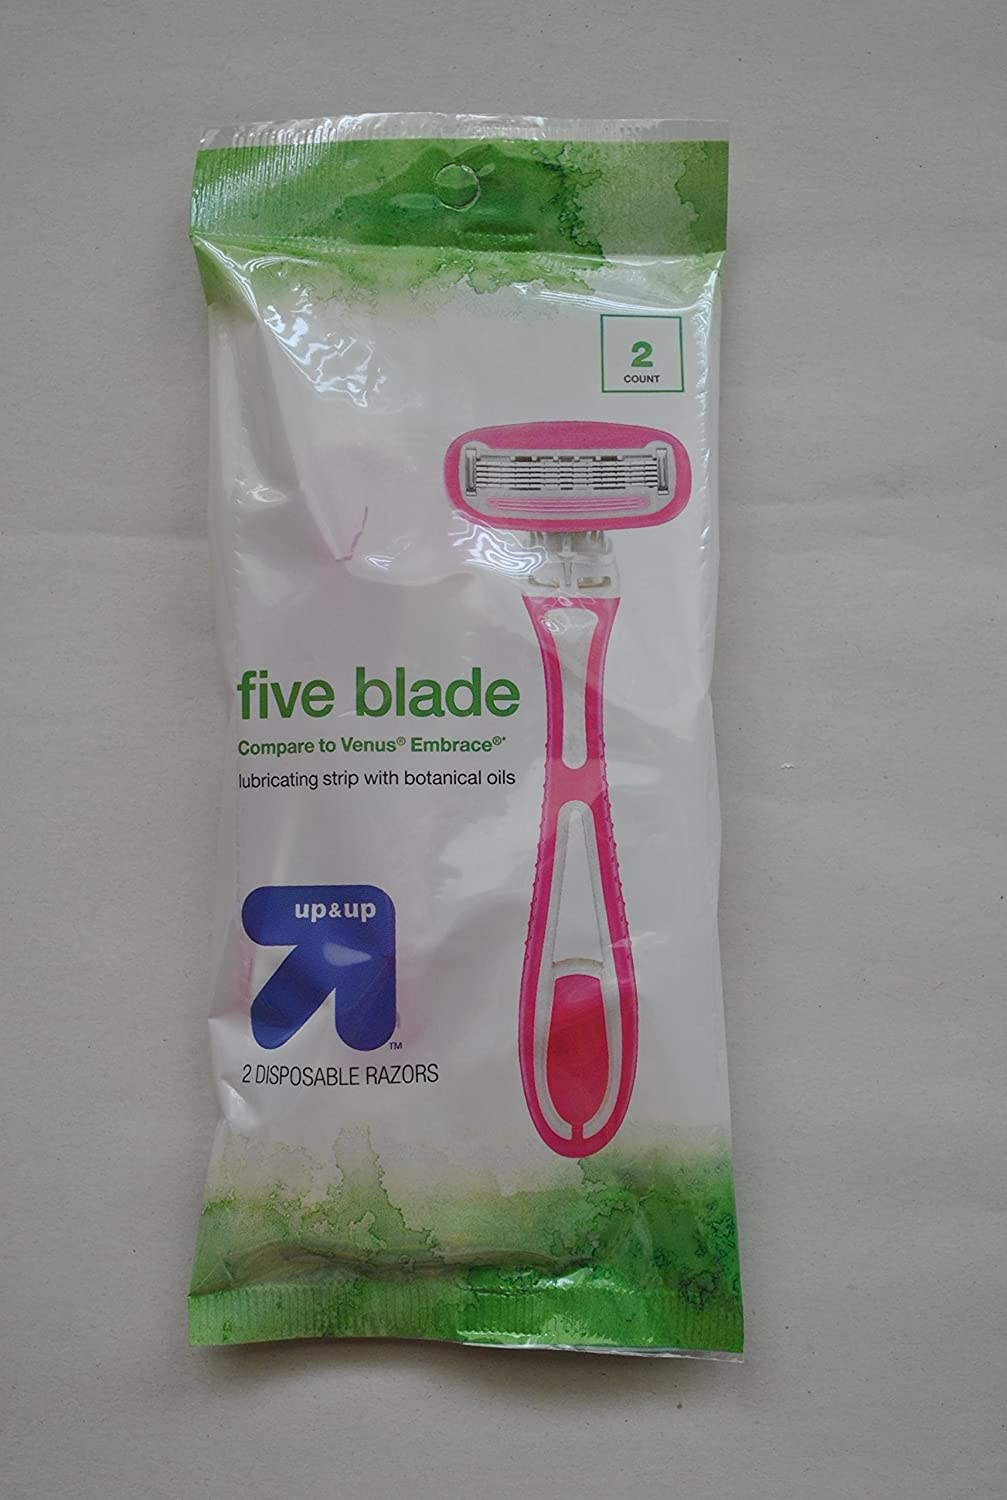 Up and Up Five Blade Disposible Razors - 2ct